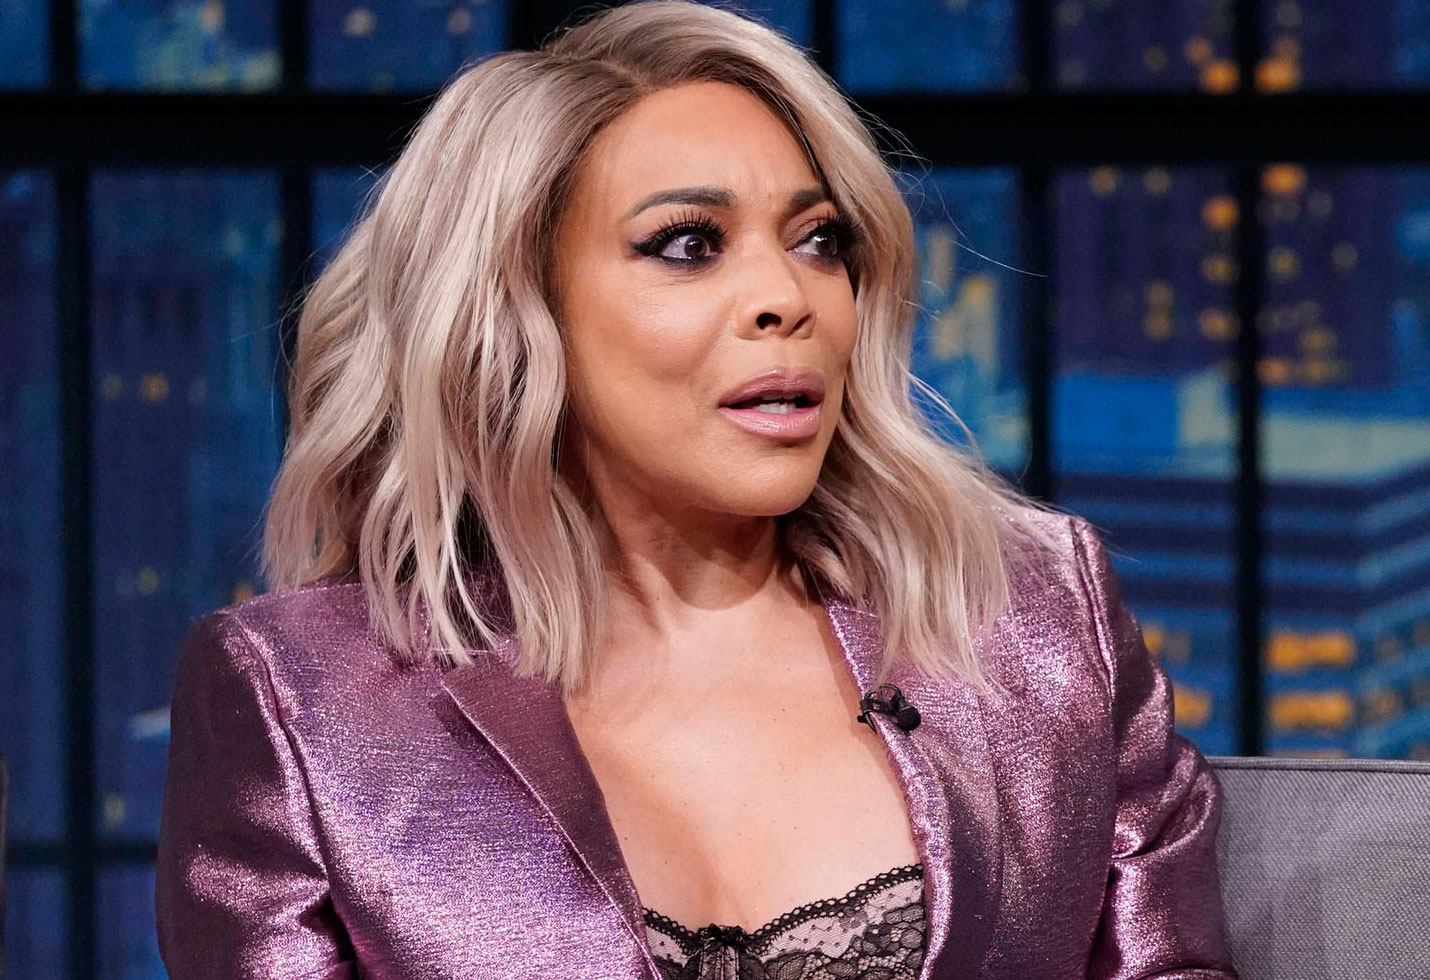 Wendy williams leaving sober home after divorce filing